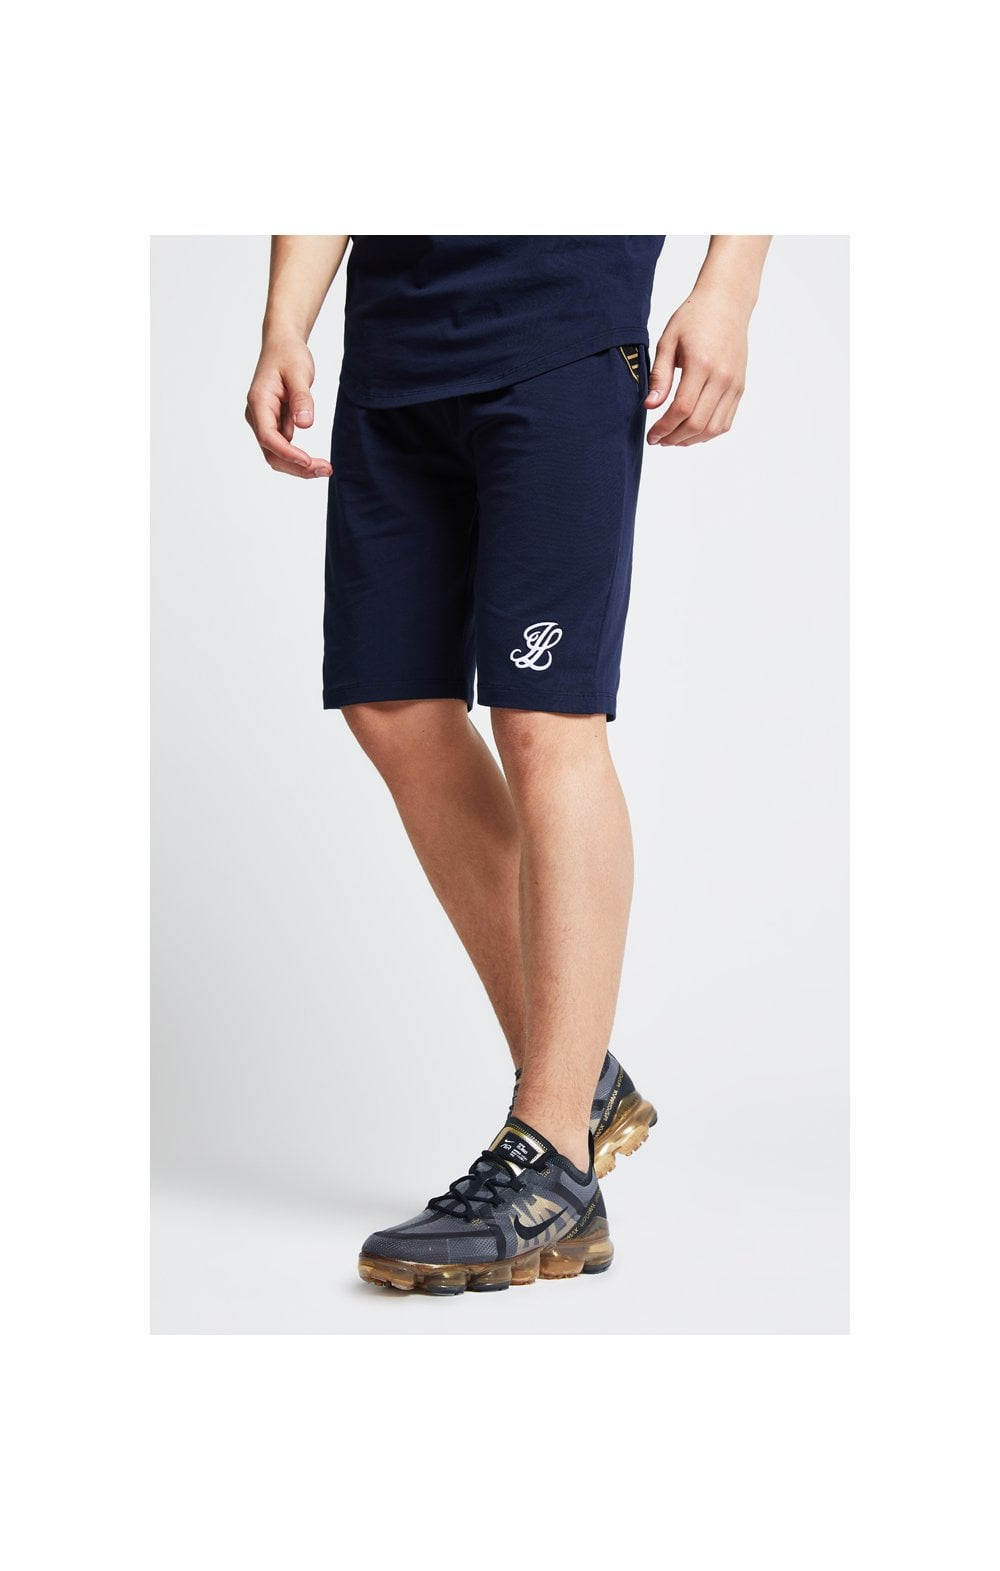 Illusive London Tape Jersey Shorts - Navy (1)